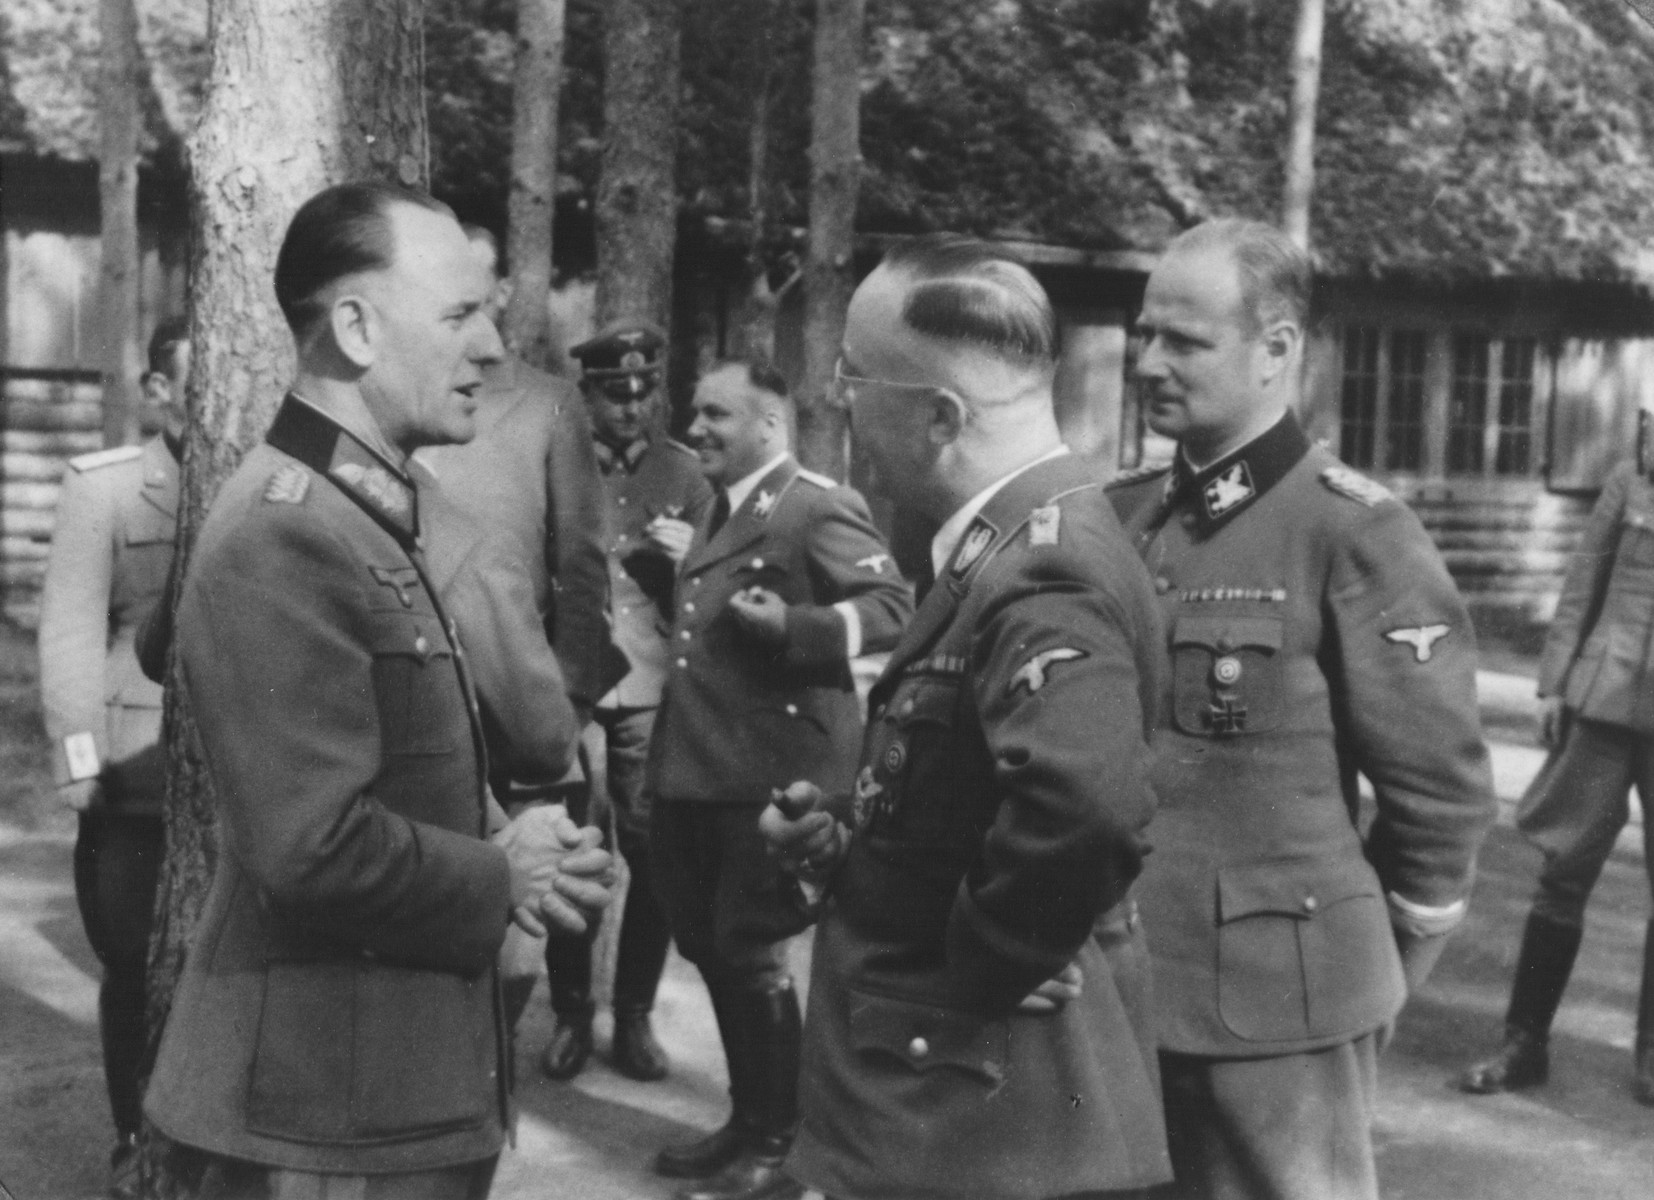 Reichsfuehrer-SS Heinrich Himmler converses outside with Rudolf Schmundt at Wolfsschanze (Wolf's Lair), Hitler's field headquarters in Rastenburg, East Prussia.   Pictured in the foreground from left to right are: Rudolf Schmundt, Heinrich Himmler and Karl Wolff.  Also pictured is Martin Bormann (in the background without a hat, between Schmundt and Himmler).